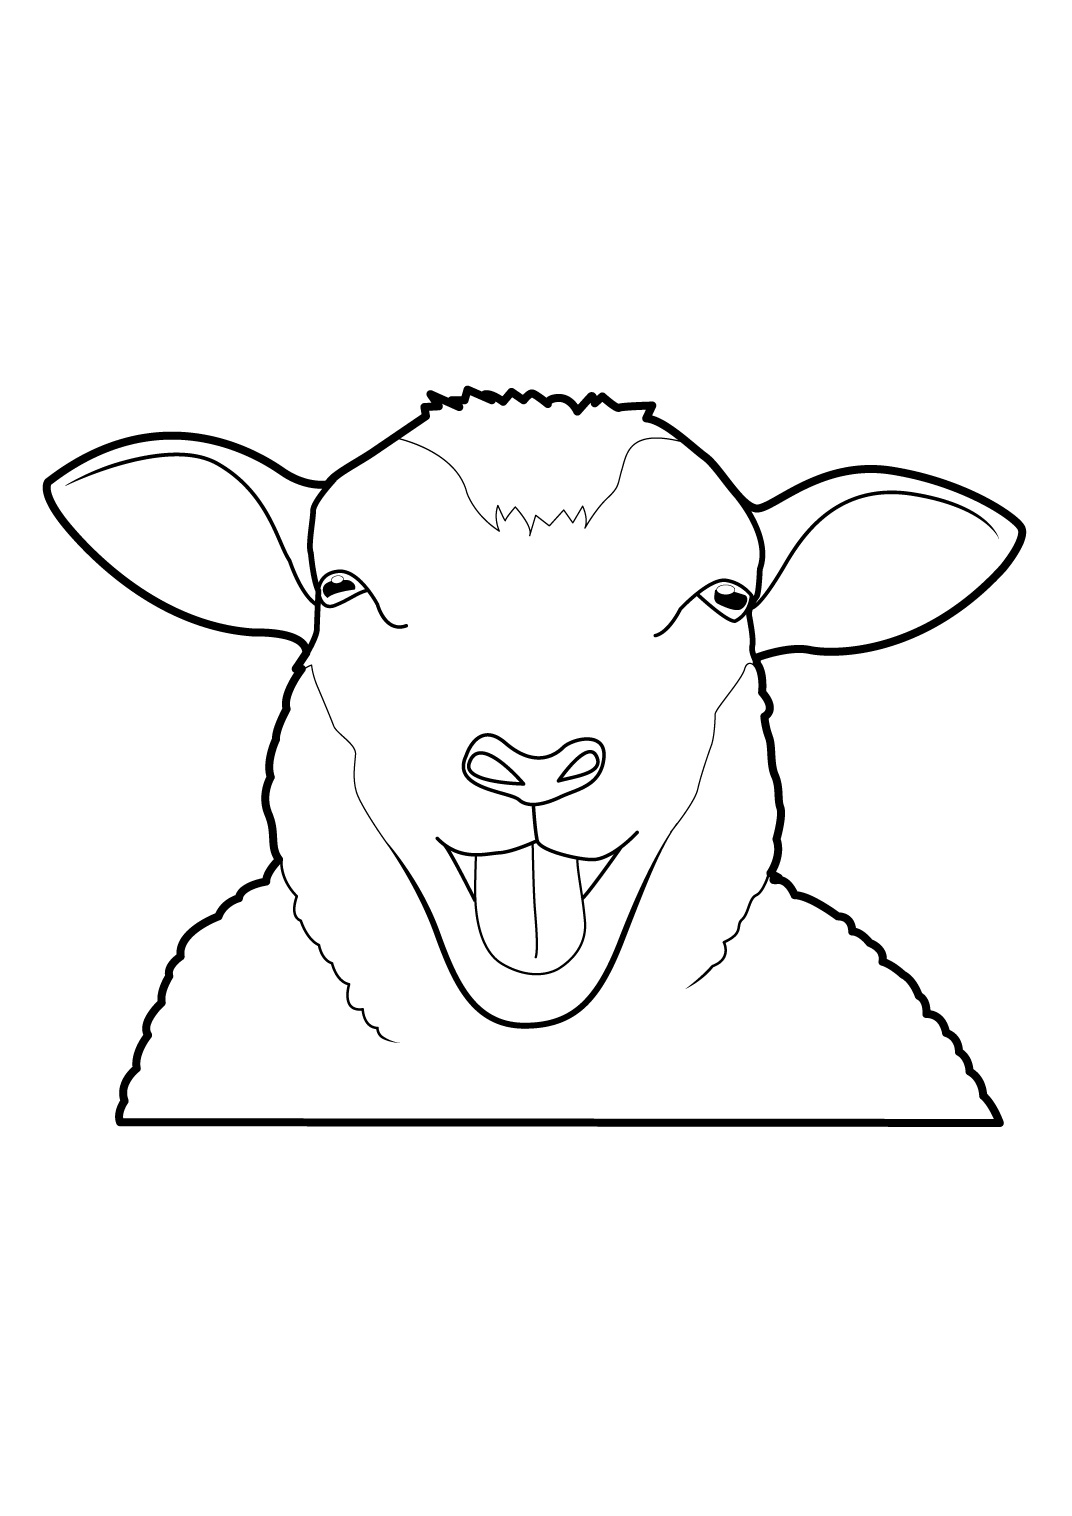 Mouton #26 (Animaux) – Coloriages À Imprimer à Mouton À Colorier